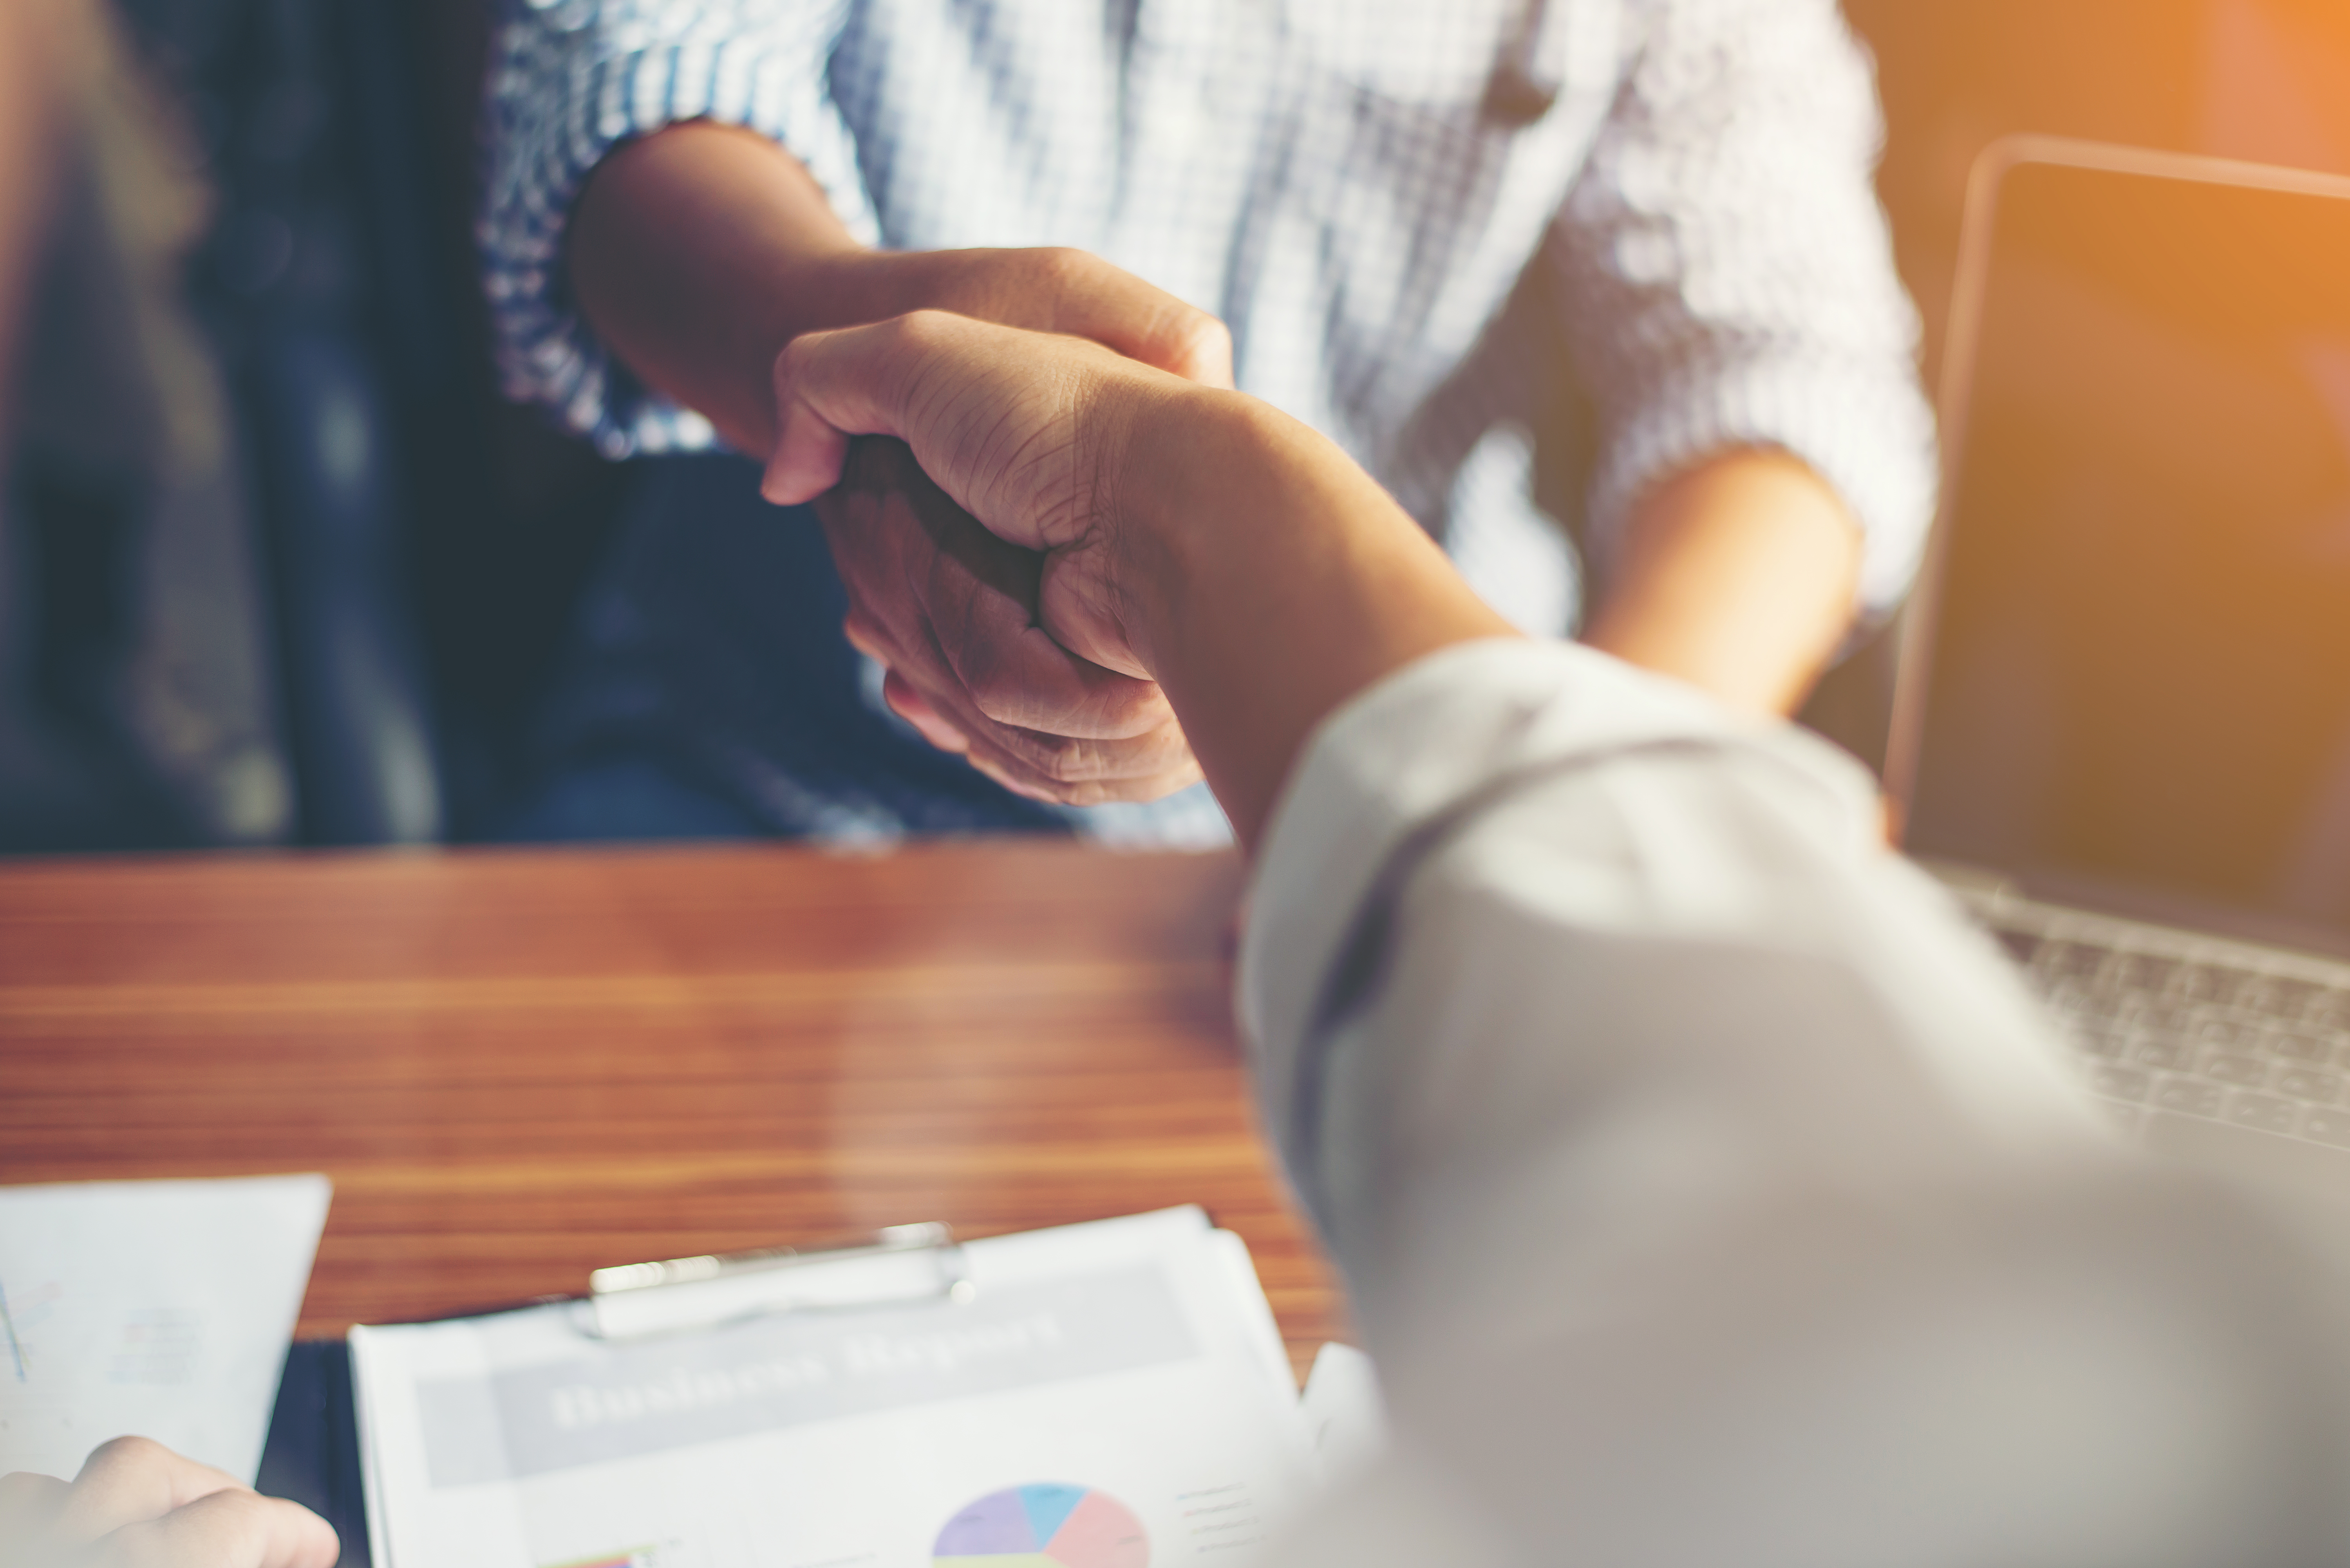 a meeting for outsourcing tips for businesses with handshaking